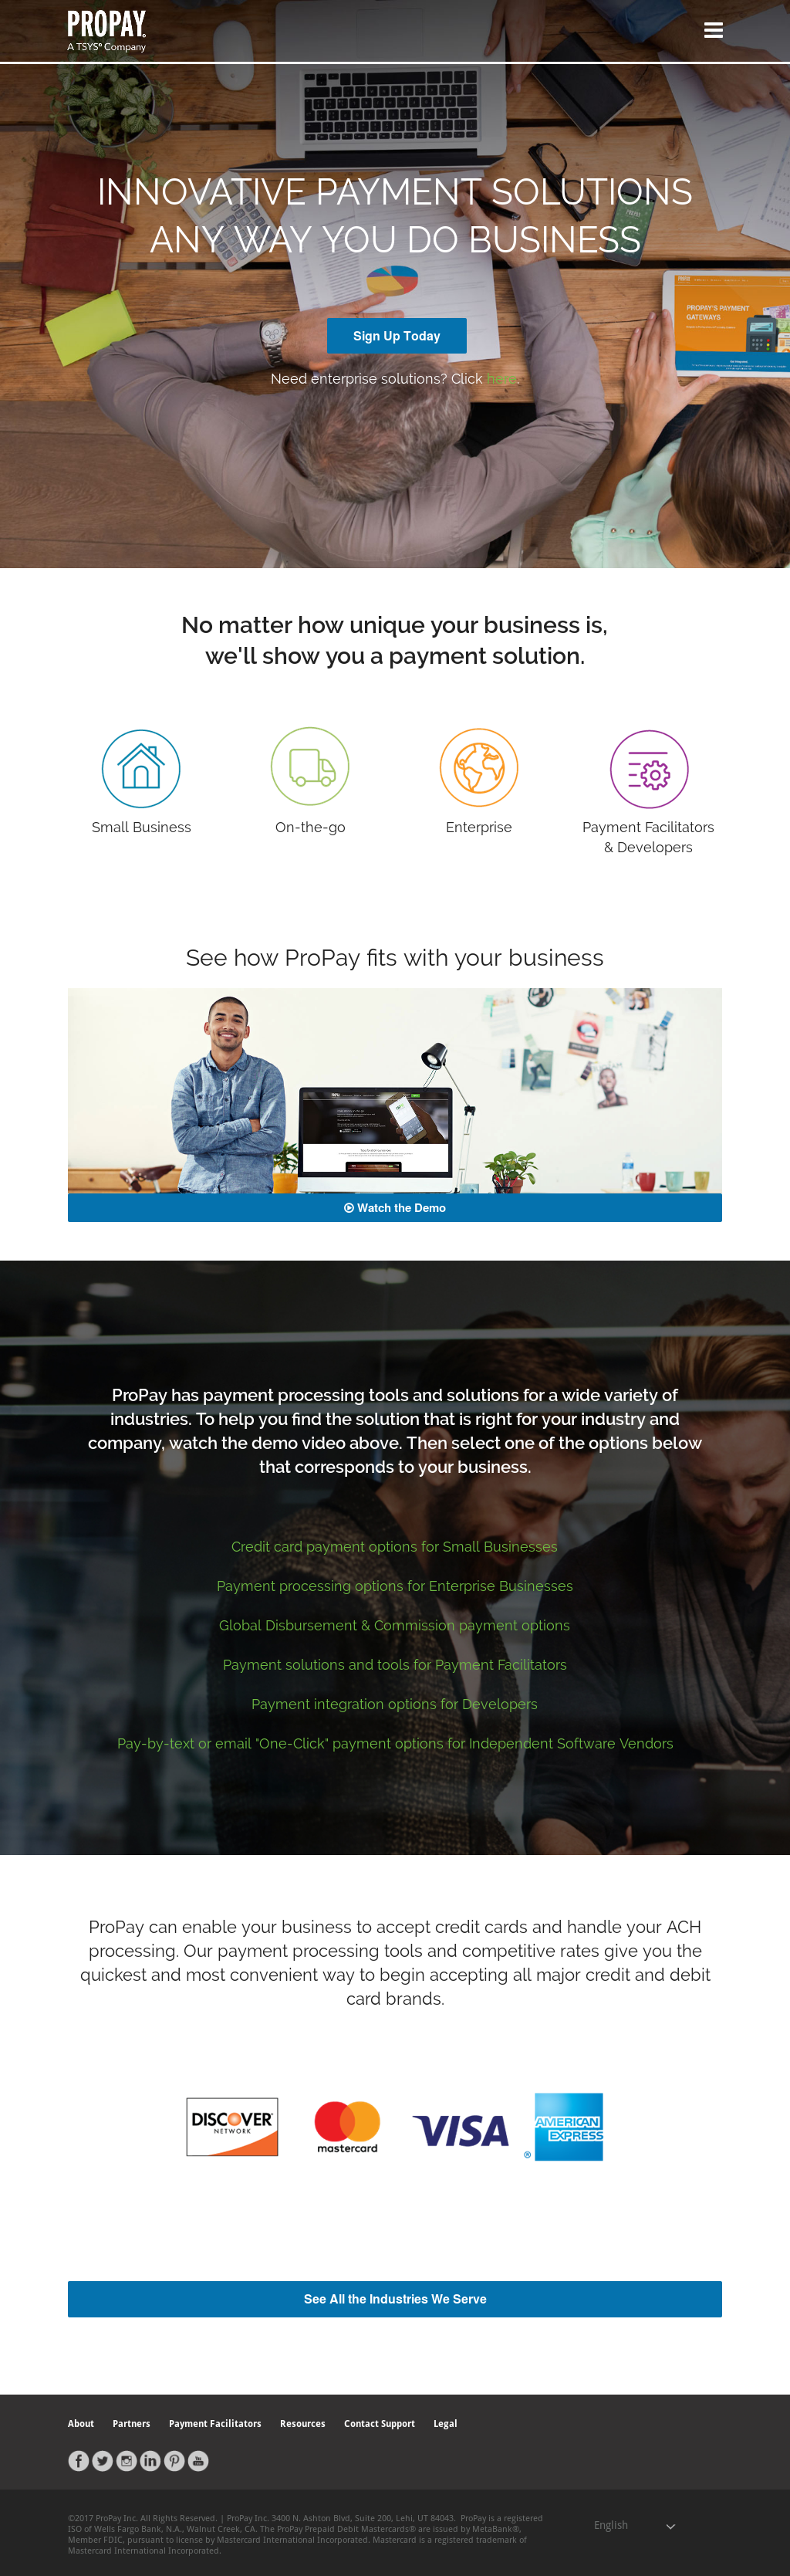 ProPay Competitors, Revenue and Employees - Owler Company Profile